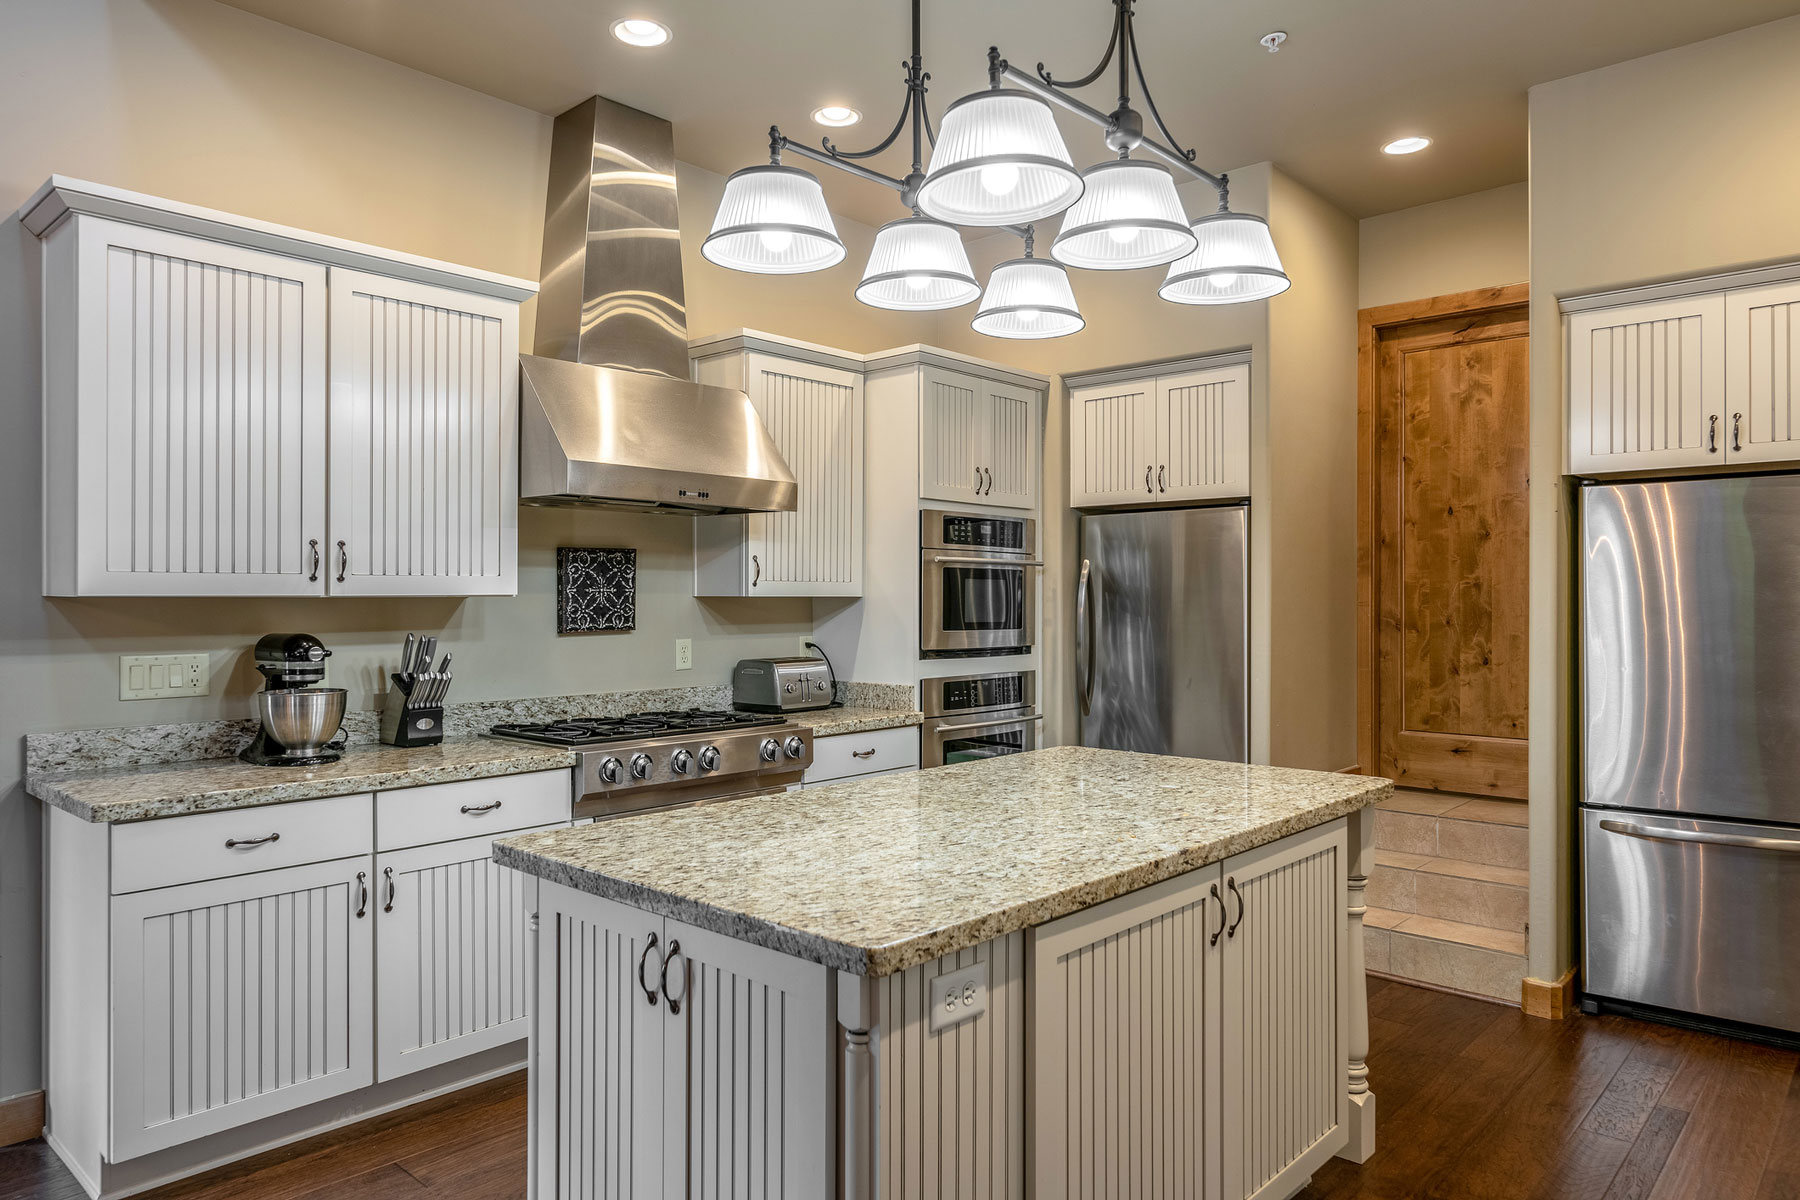 What to Know About Refinishing Kitchen Cabinets